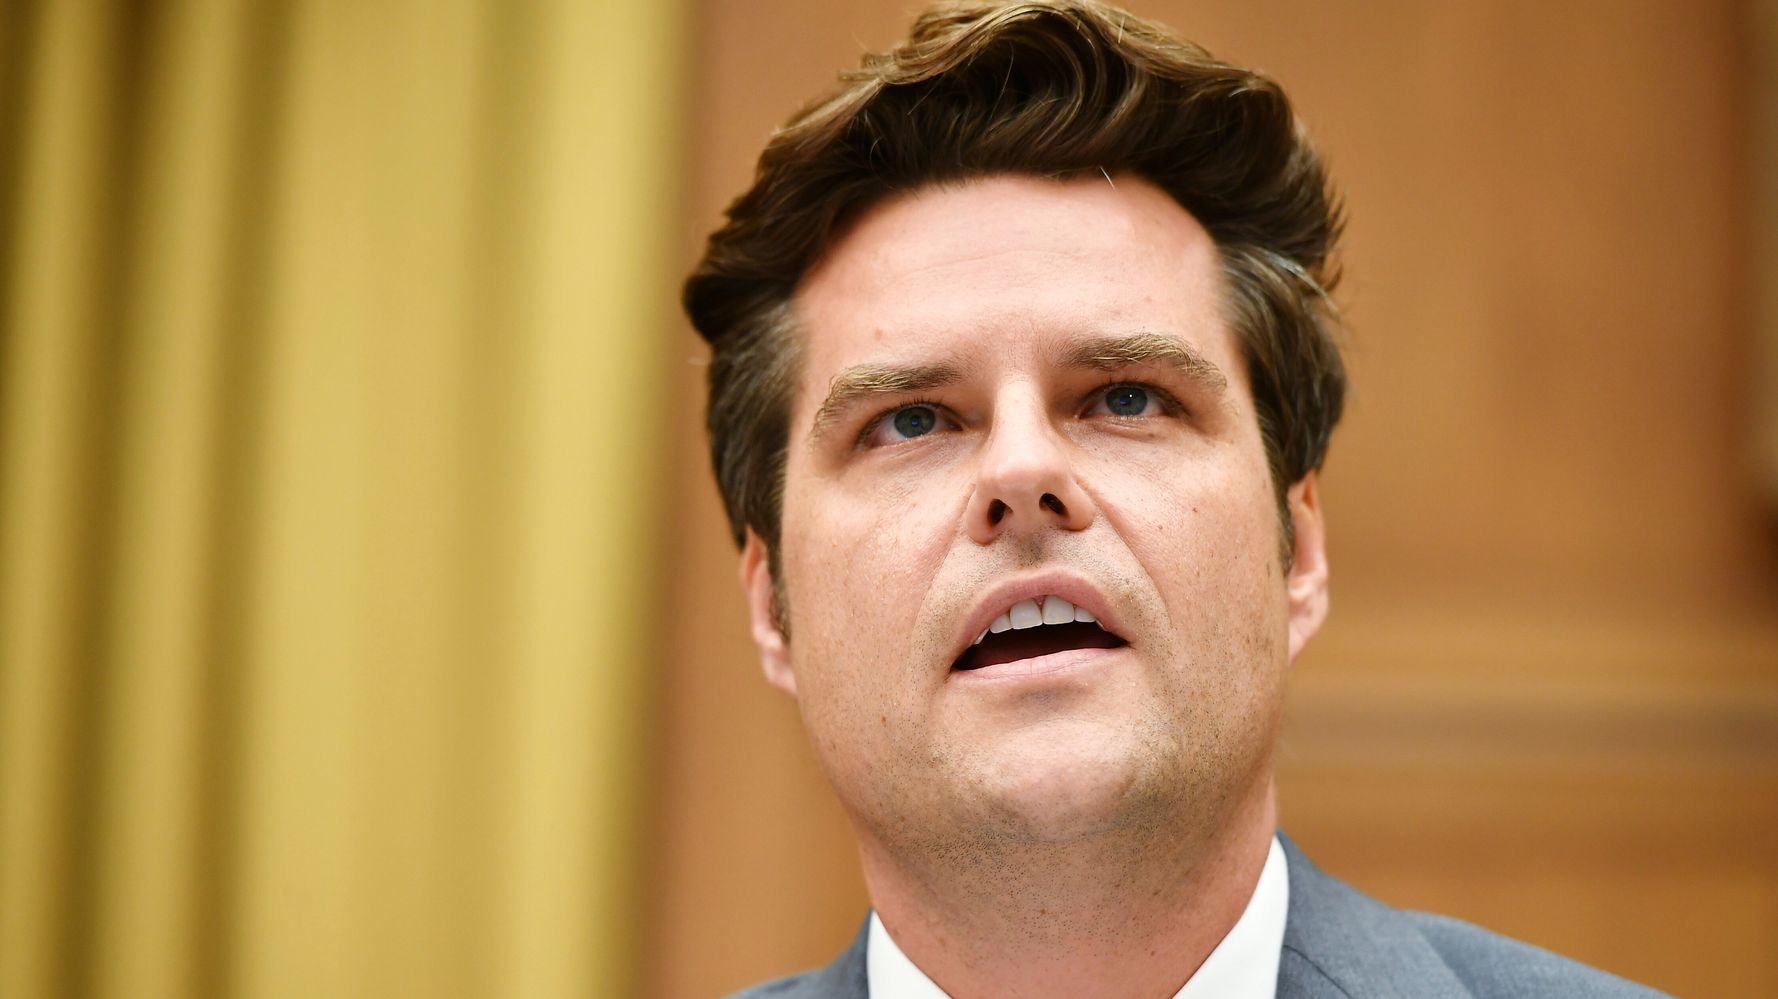 Liz Cheney's Office Slams Matt Gaetz — For Wearing Makeup, Of All Things